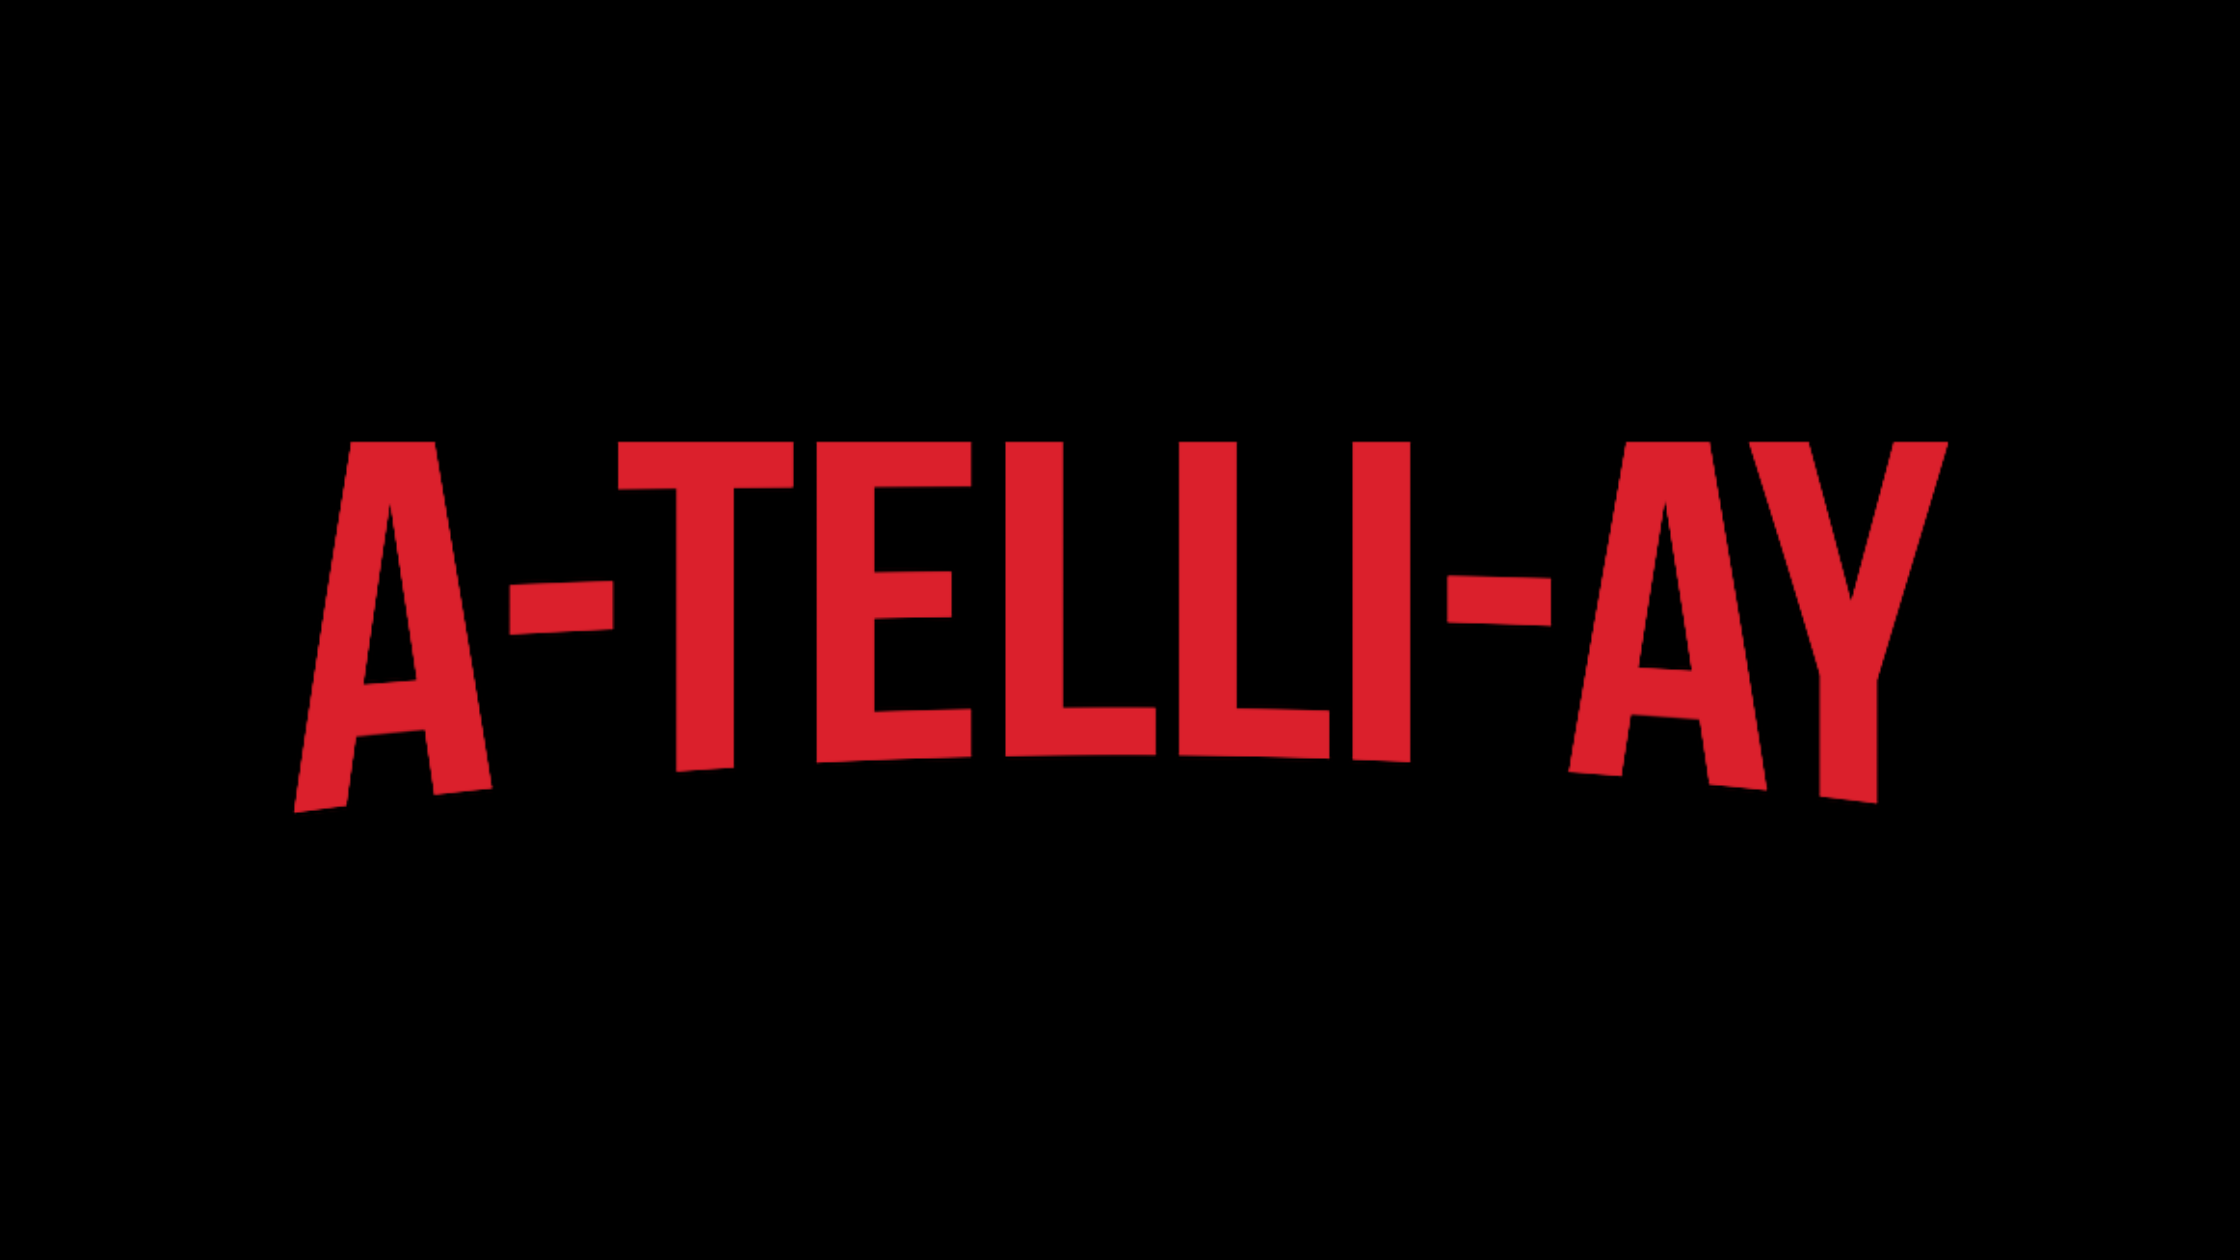 Text shows the pronunciation of 'Atelier': a-telli-ay